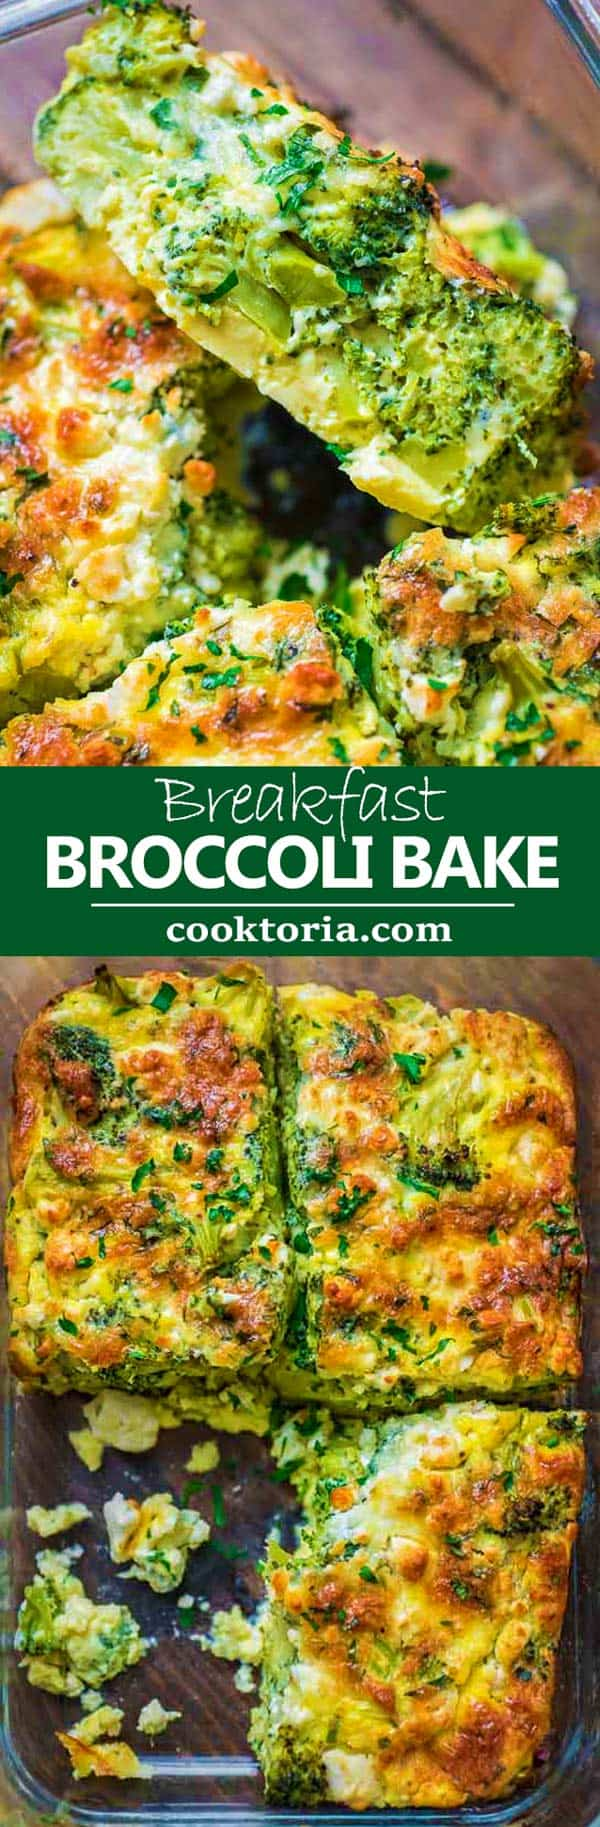 ThisBreakfast Broccoli Bake made with eggs, Provolone, and feta cheeseis healthy, filling and delicious way to start your day! That's the only Broccoli Bake recipe you'll ever need. #broccoli #broccolibreakfast